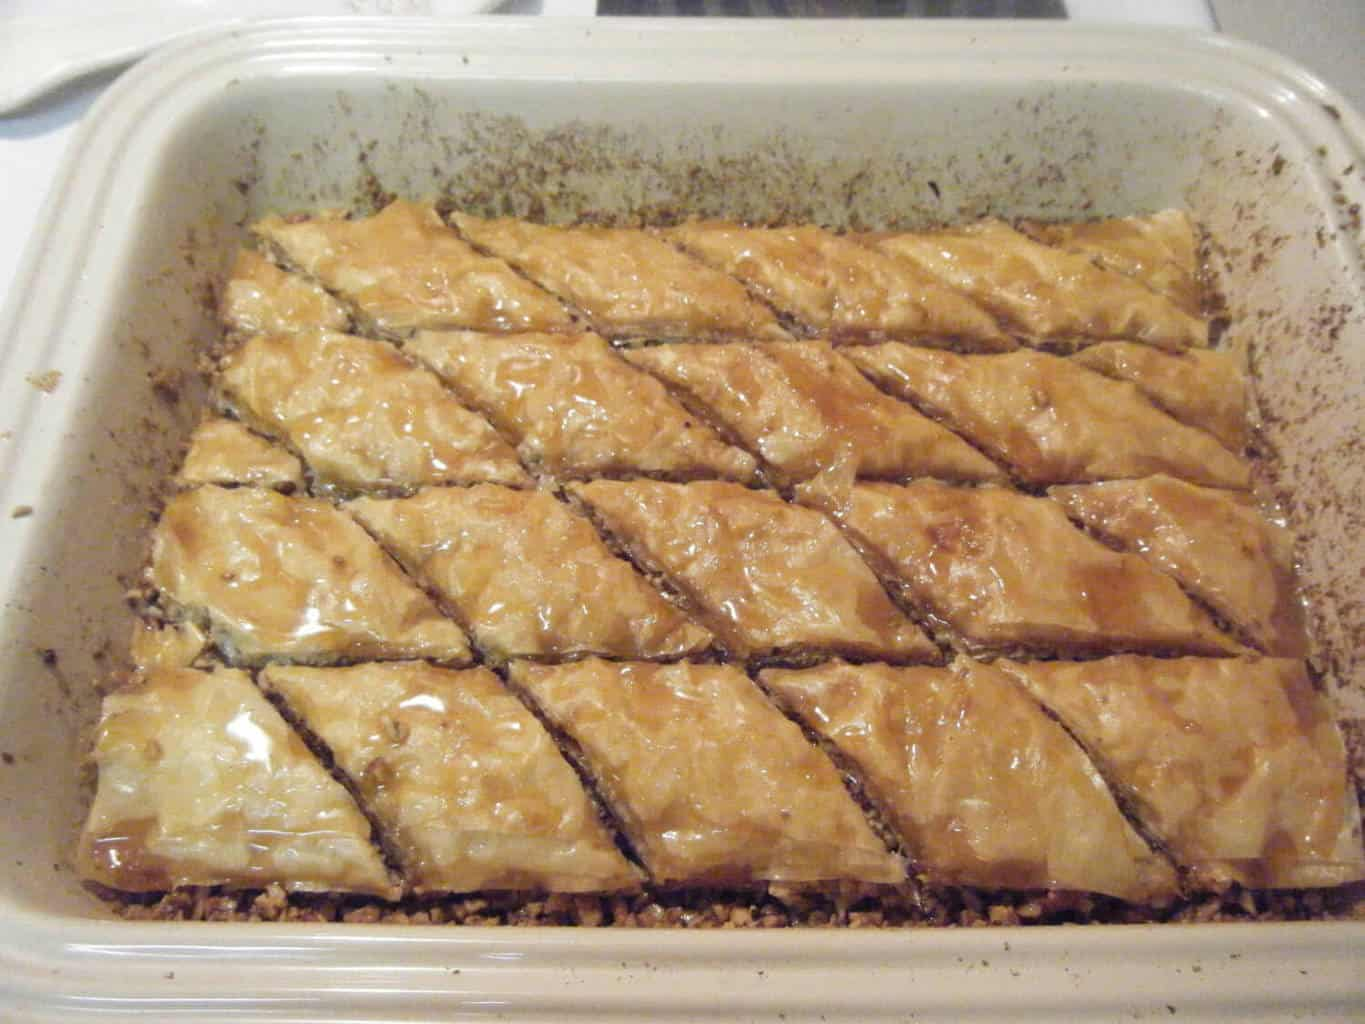 finished homemade Baklava